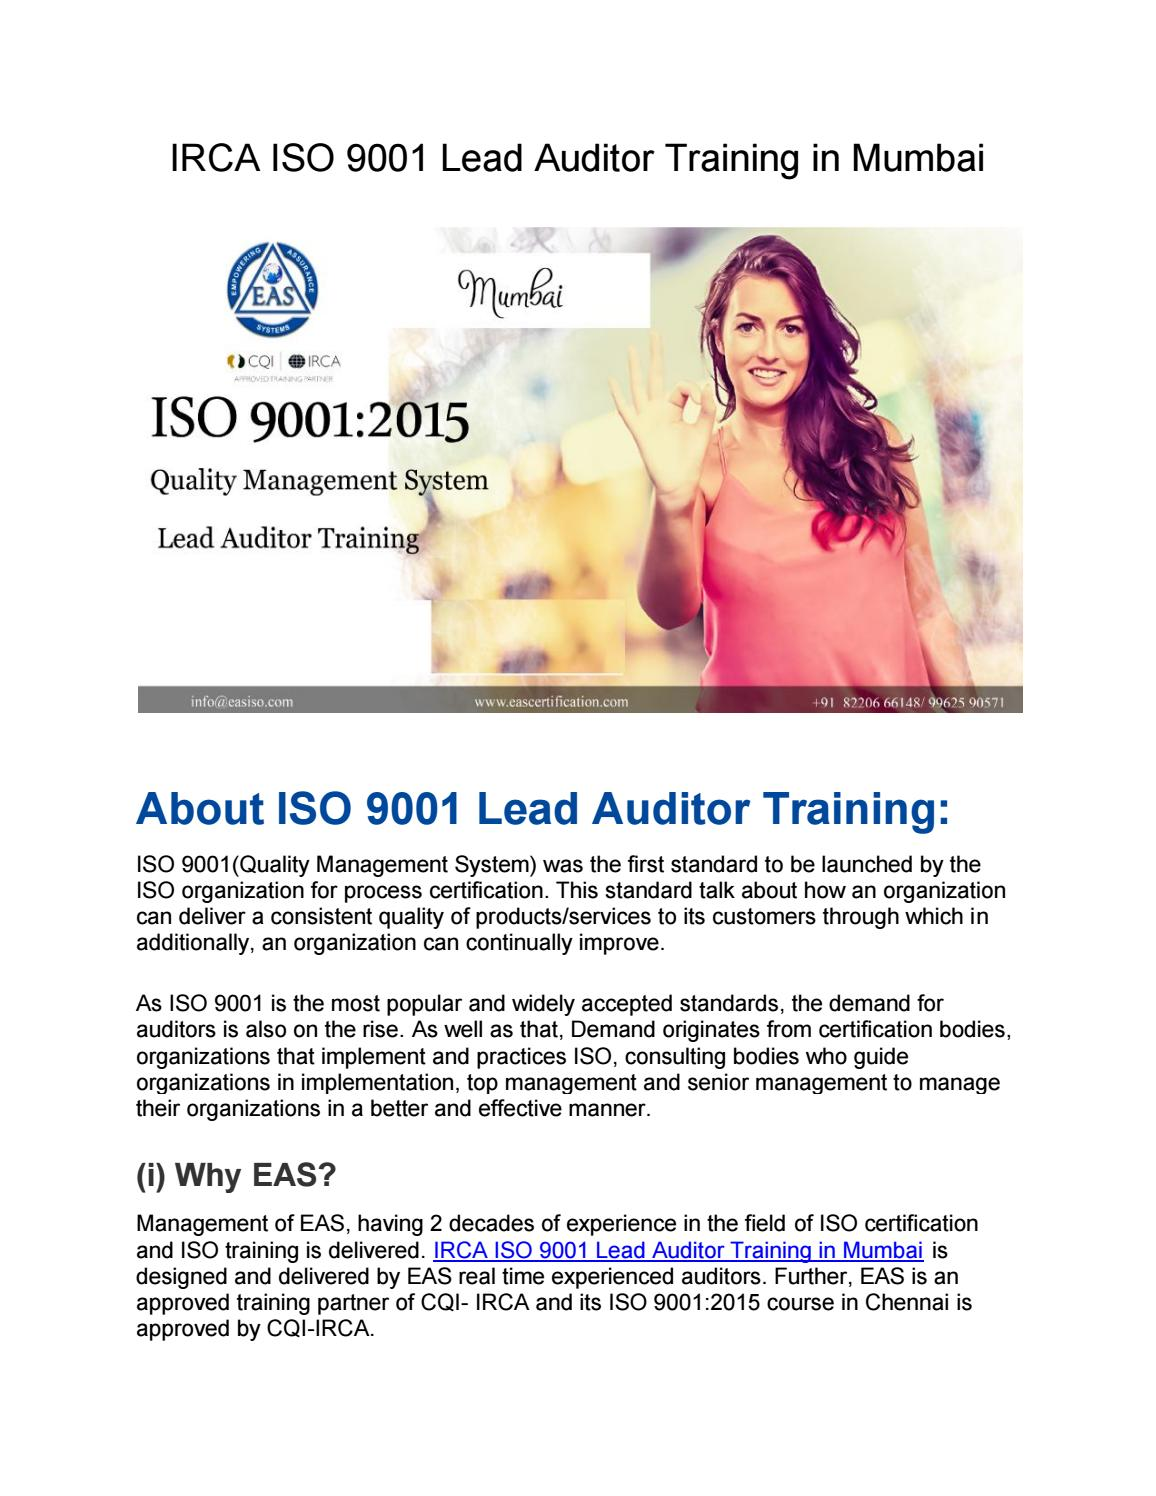 IRCA ISO 9001 Lead Auditor Training in Mumbai by eas